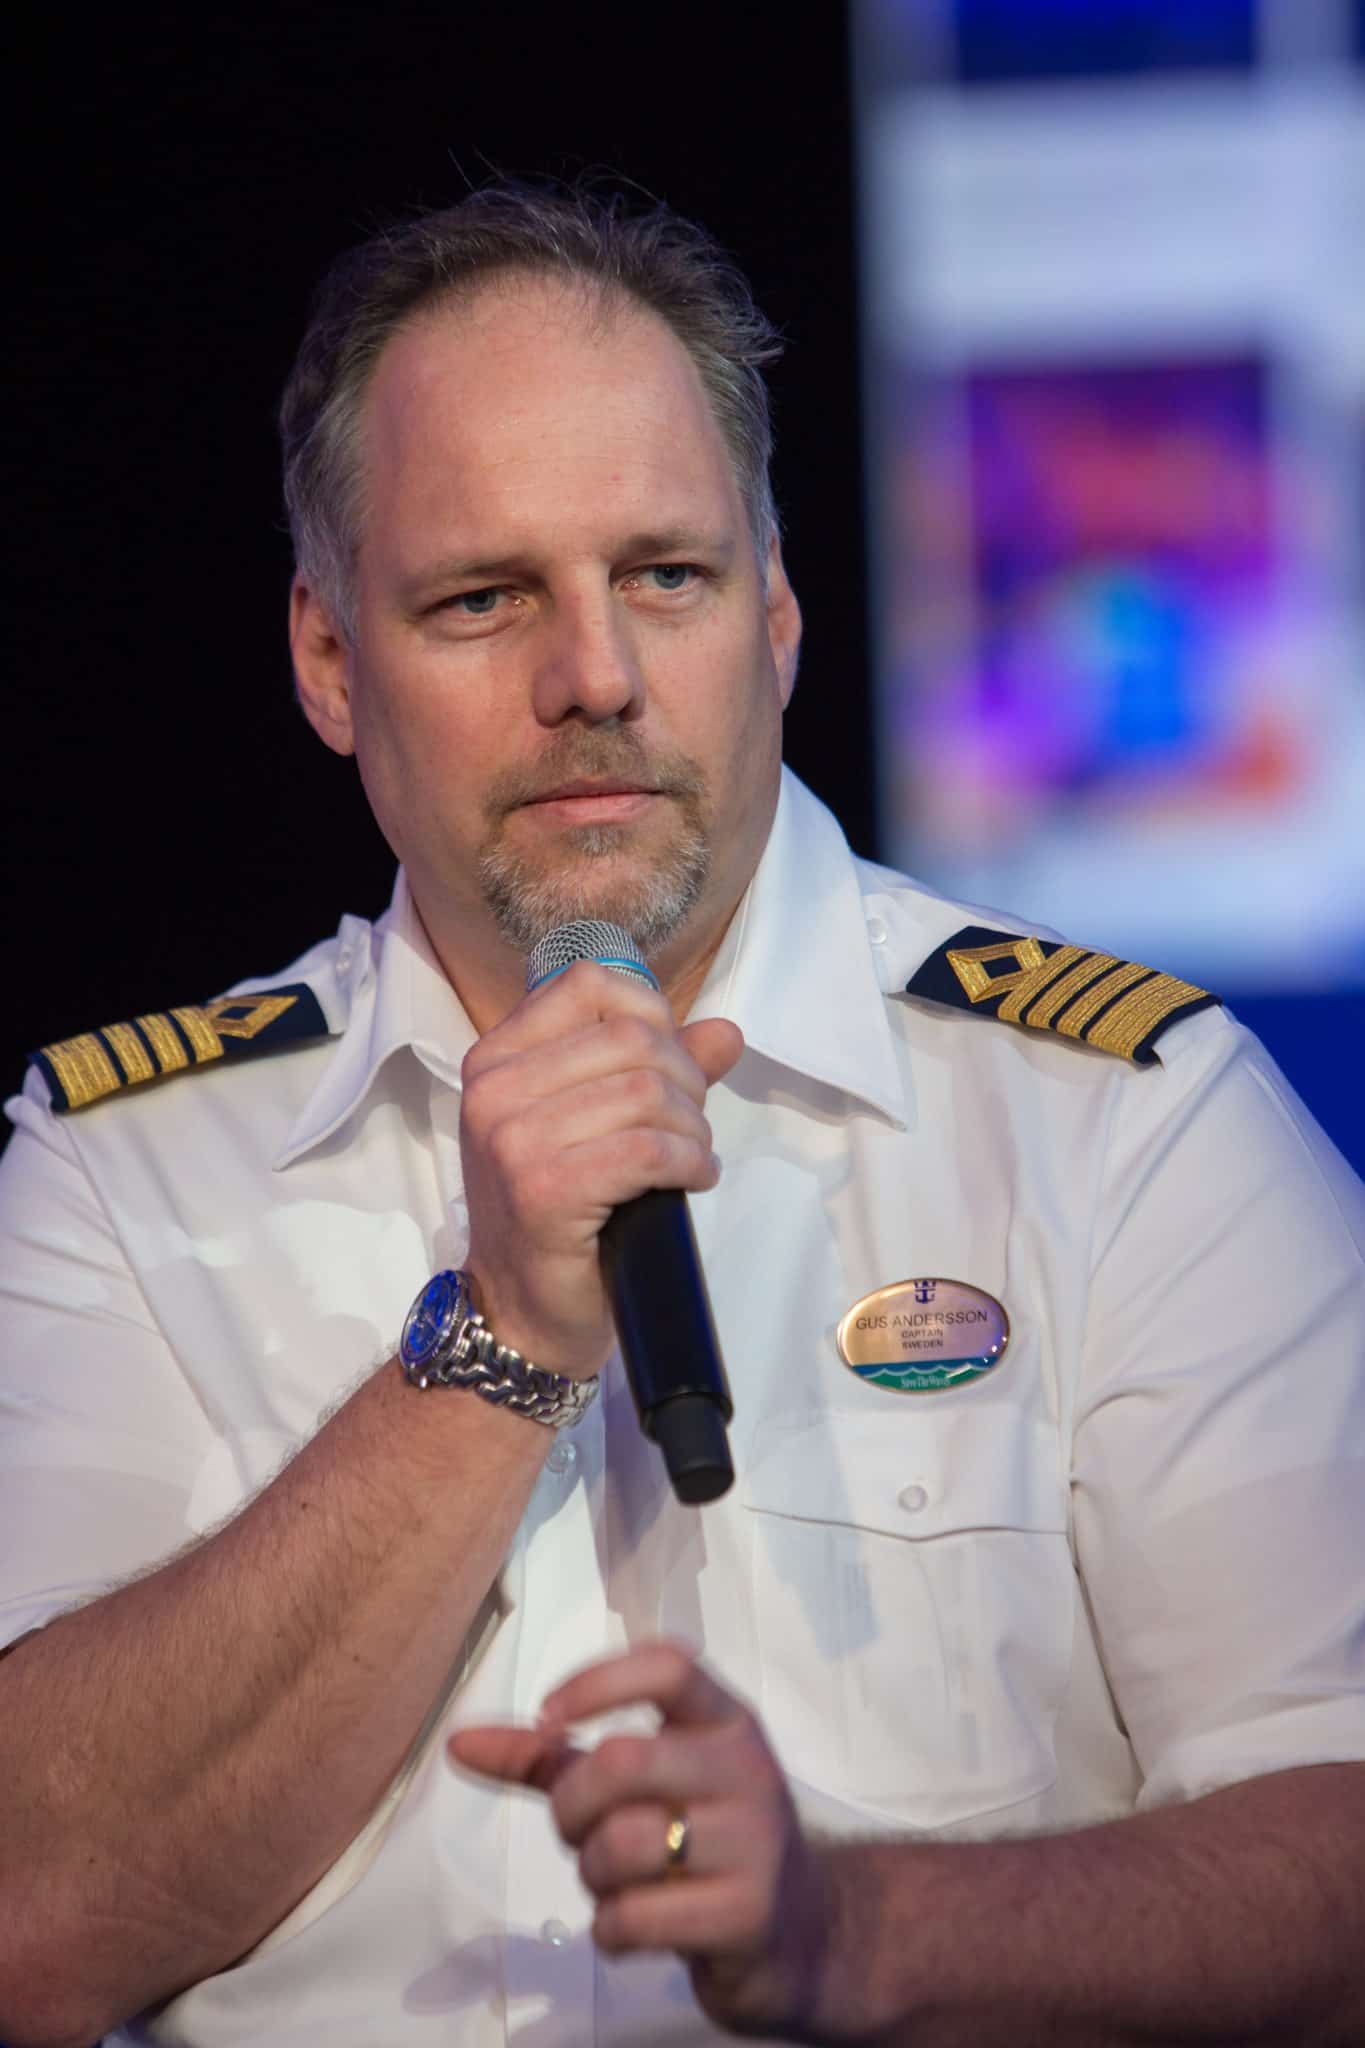 """Royal Caribbean International's Harmony of the Seas, the world""""s largest and newest cruise ship, previews in Southampton. L-R Gus Andersson, Captain Harmony of the Seas."""